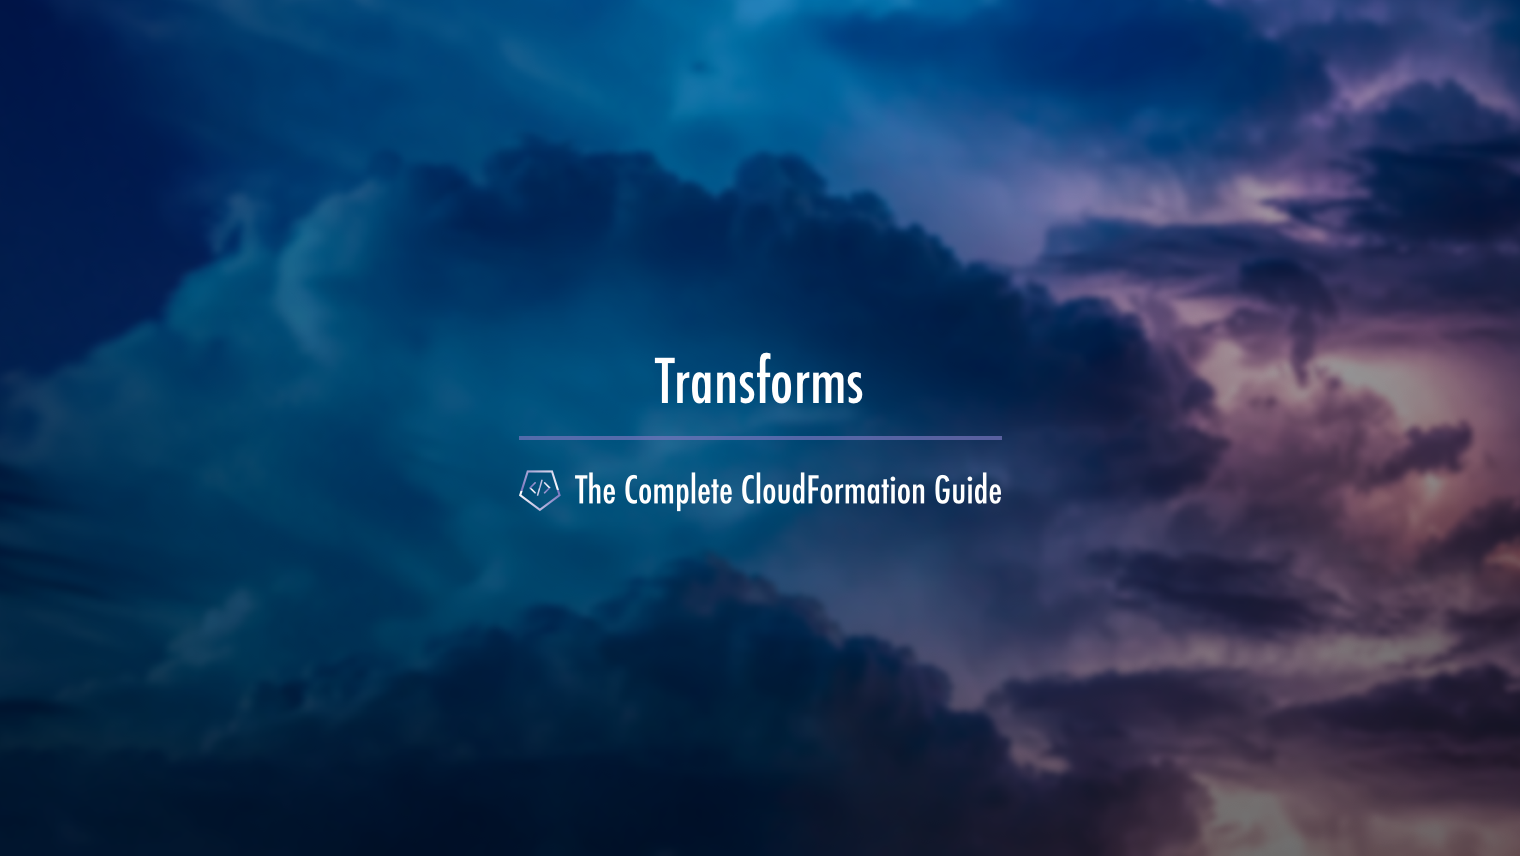 The Complete CloudFormation Guide Transform